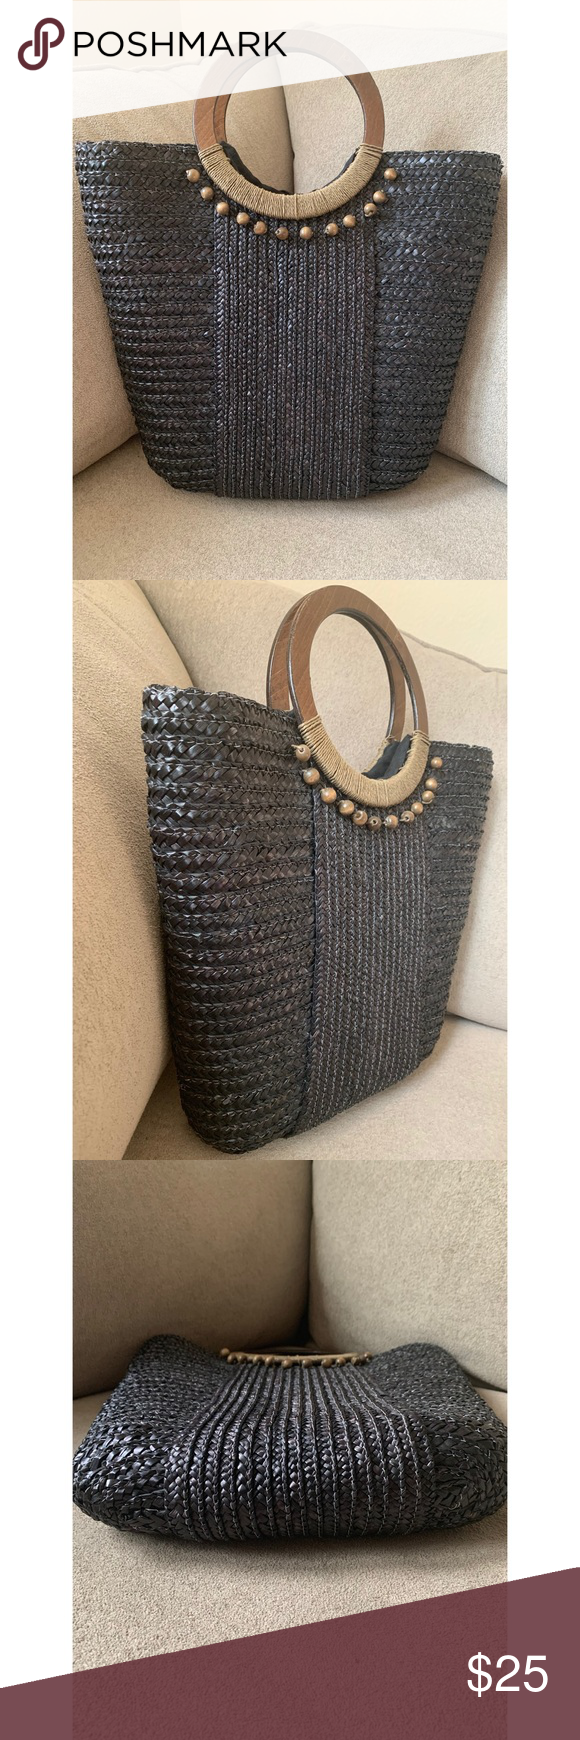 • woven straw tote bag • Textured black straw woven purse with wooden handles & beads  Fully lined & has two small slip in pockets on interior   Note- One exterior corner on bottom has some wear (as pictured) & a few beads are slightly loose Bags Totes #woodentotebag